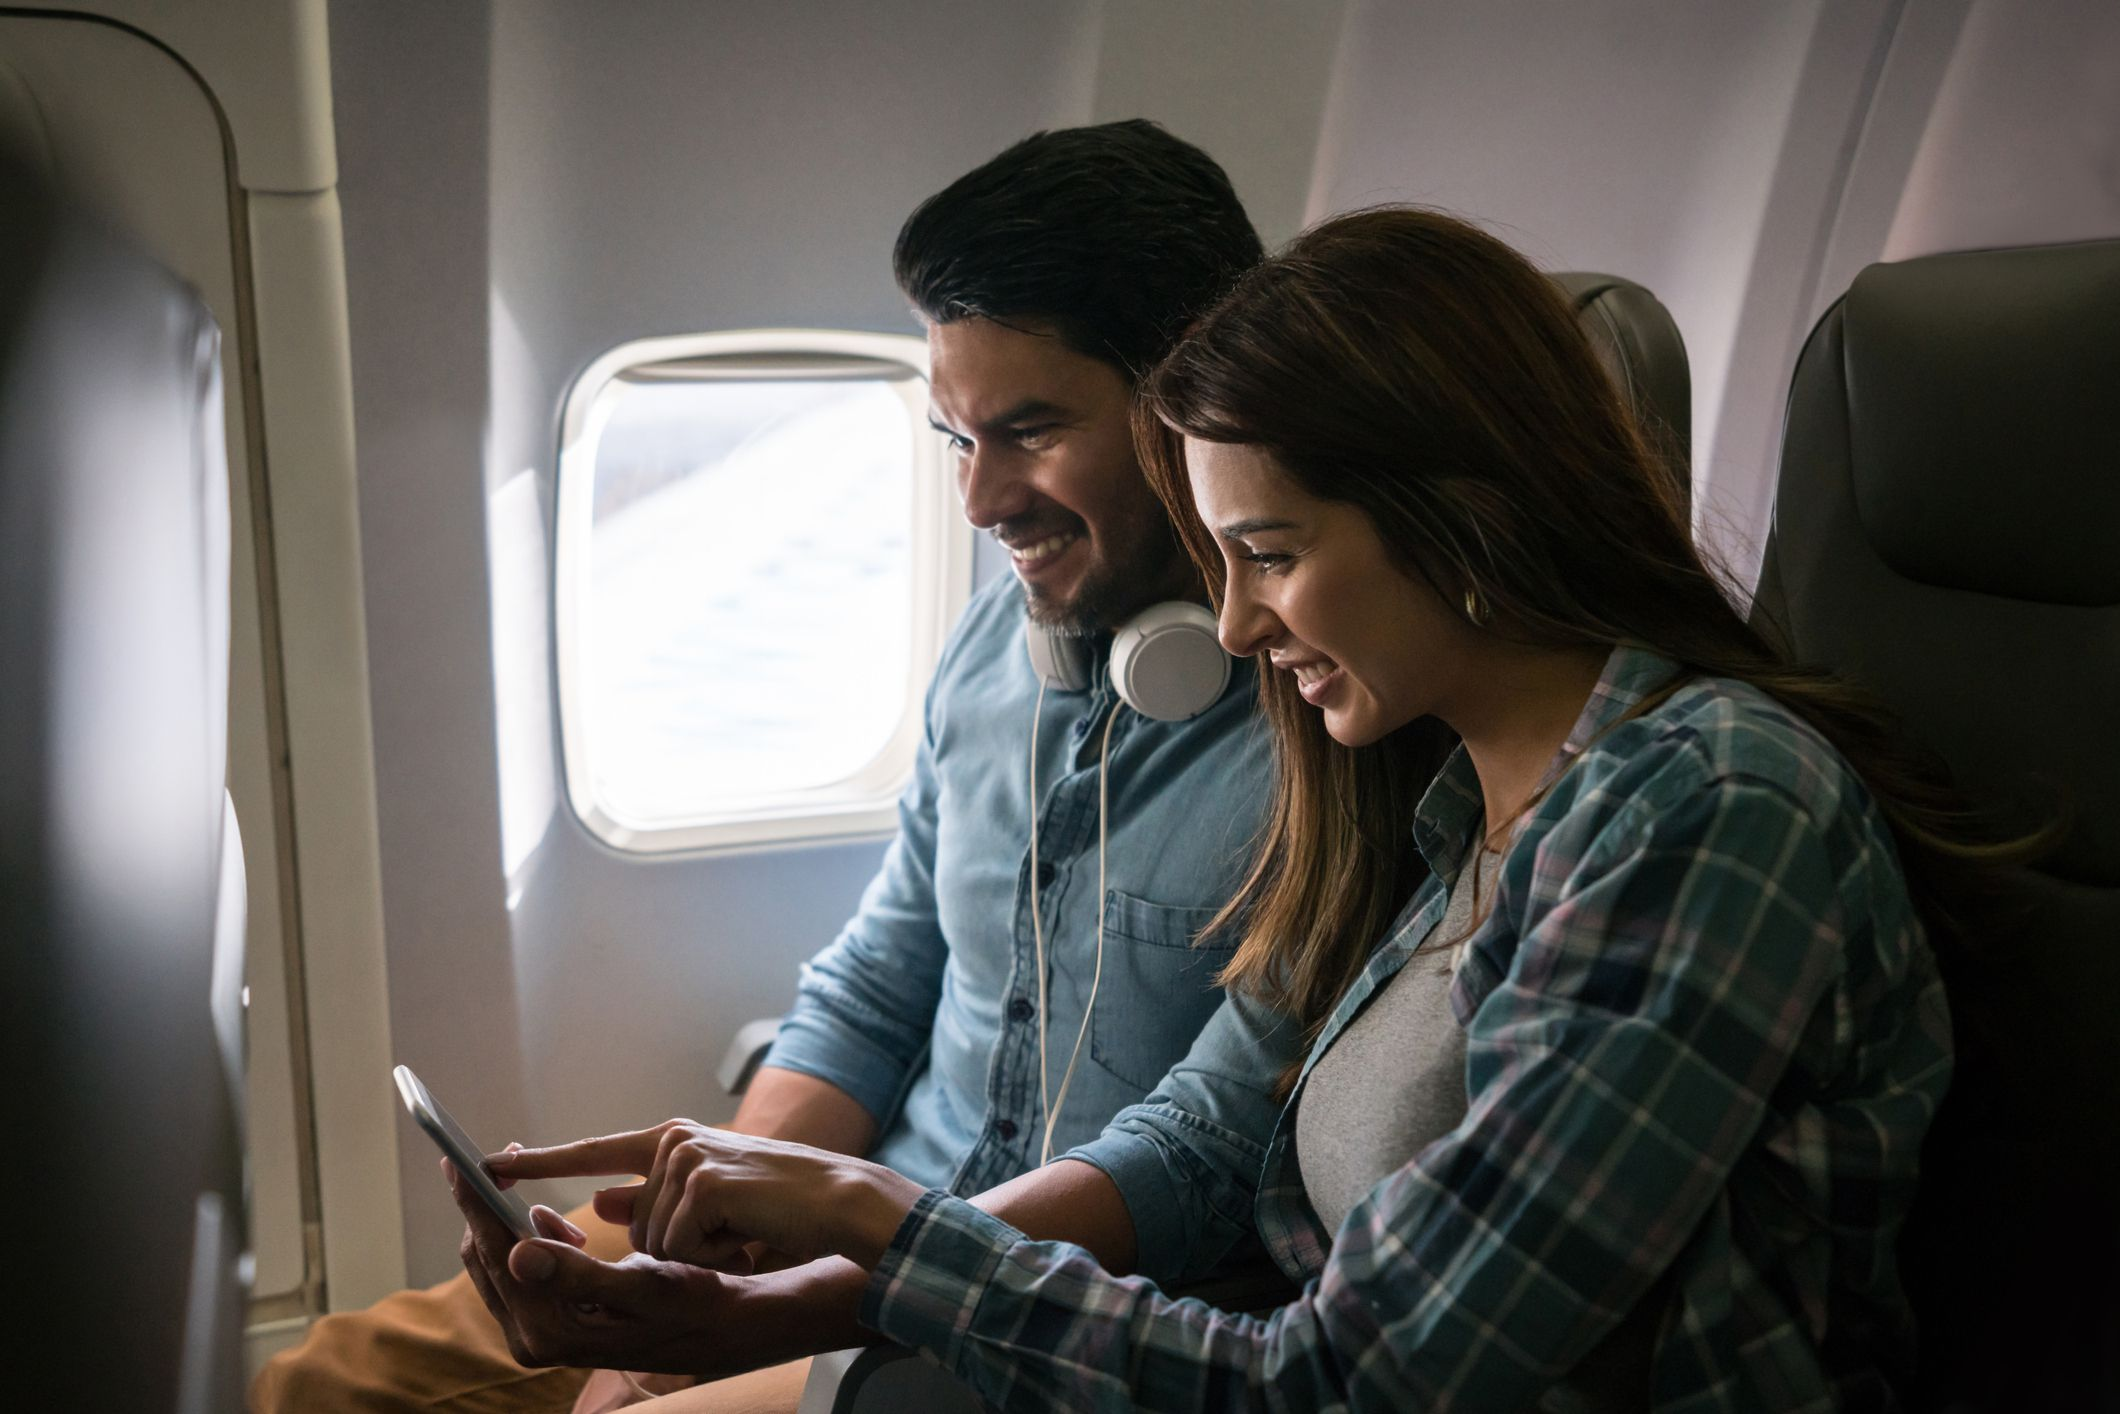 How to Choose Airplane Seats When Traveling as a Couple